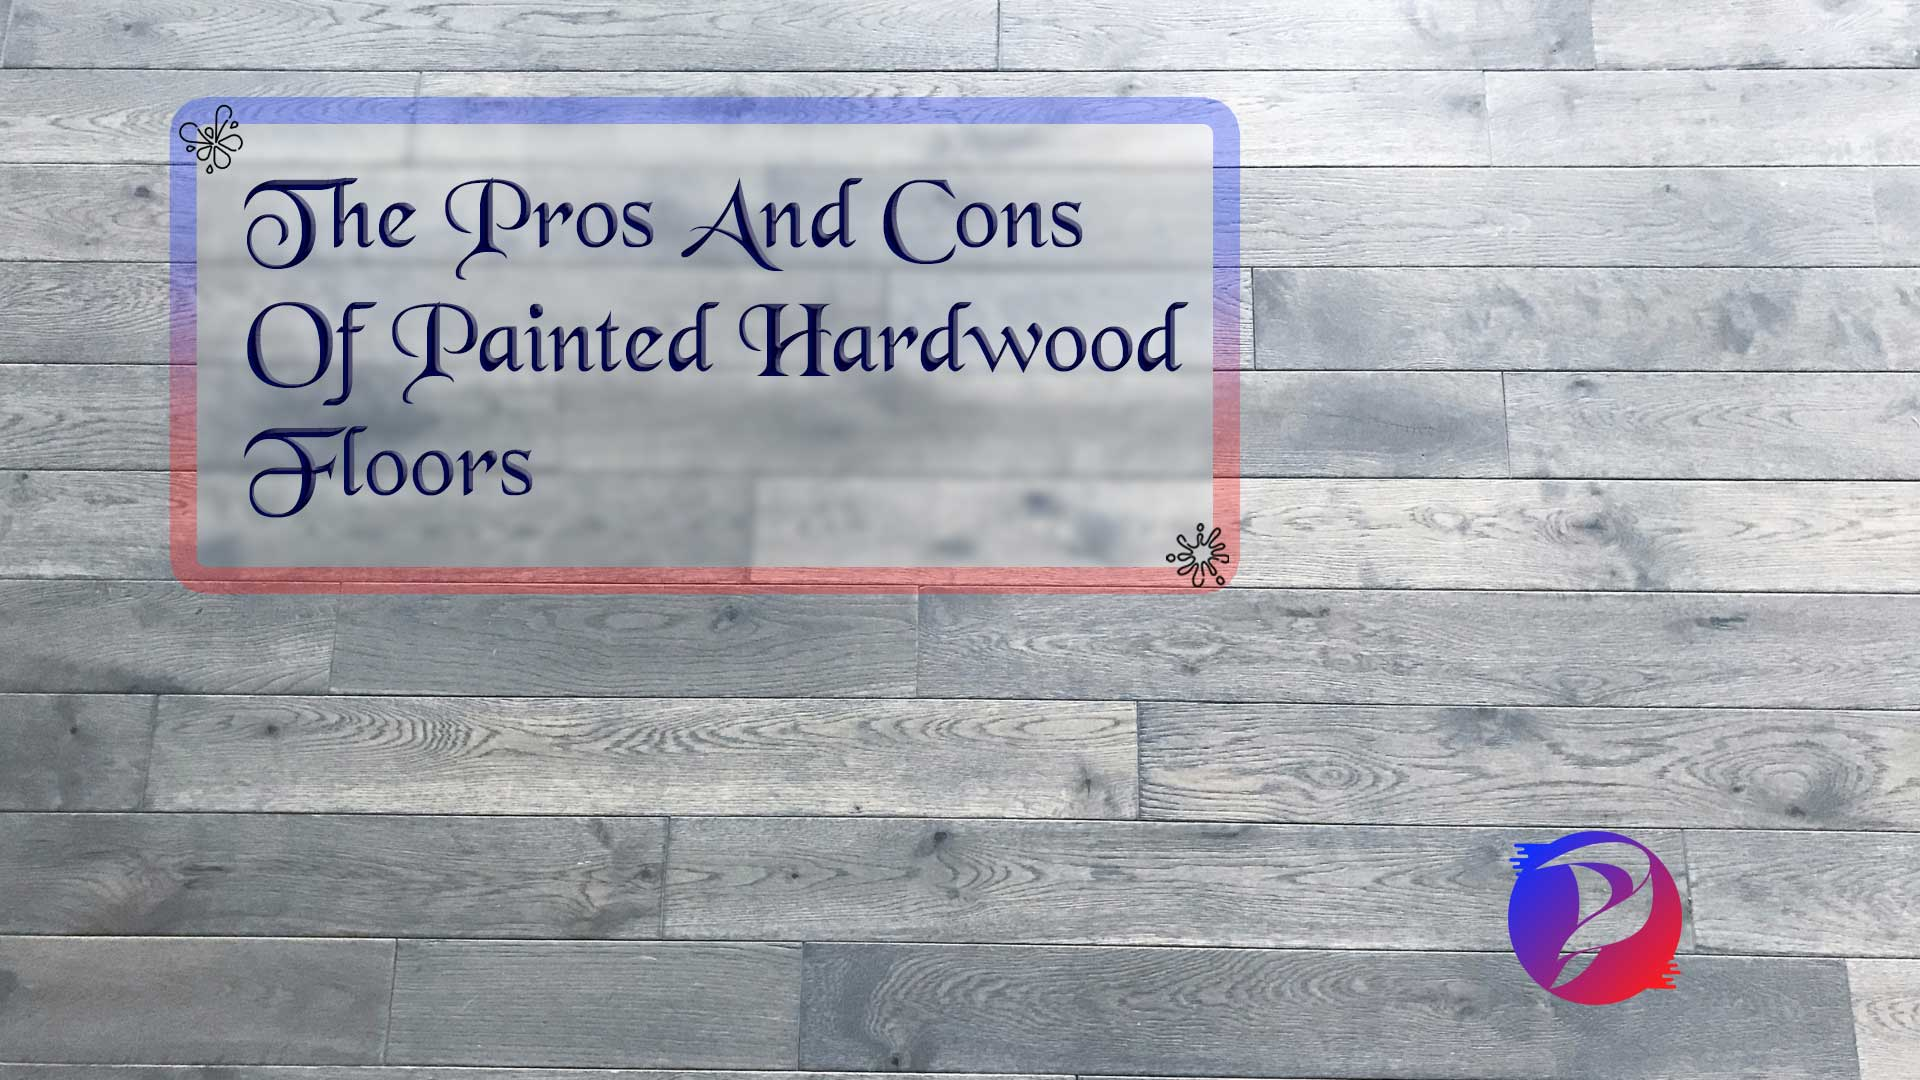 The Pros And Cons Of Painted Hardwood Floors